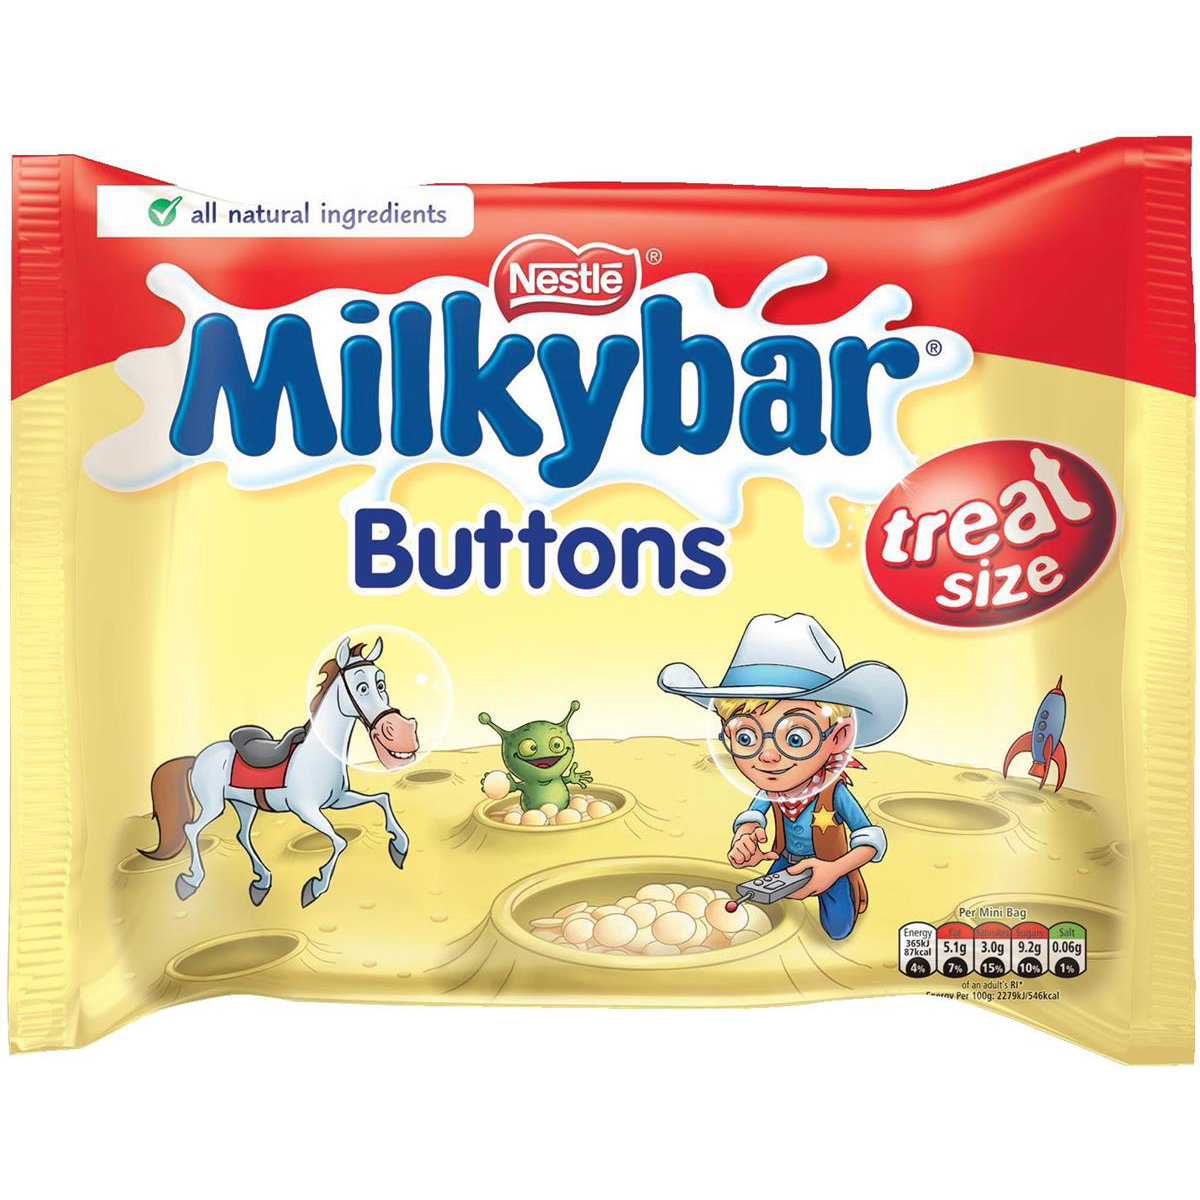 Milky Bar Buttons White Chocolate Mini Bags 189g (Approx 12 Mini Bags) Ref 12132820